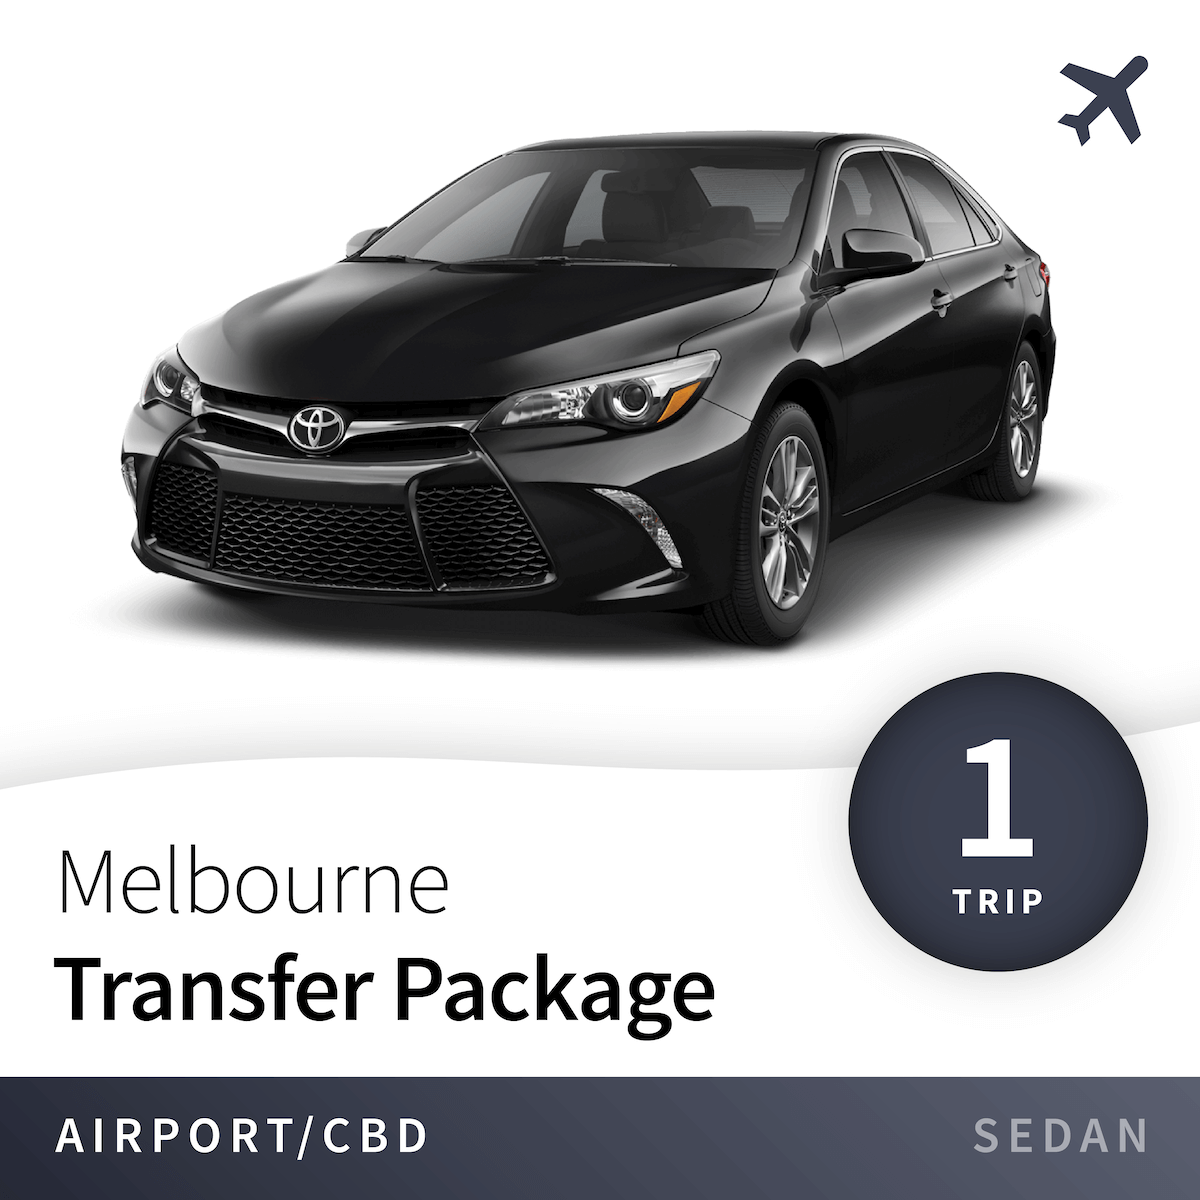 Melbourne Airport Transfer Package - Sedan (1 Trip) 3